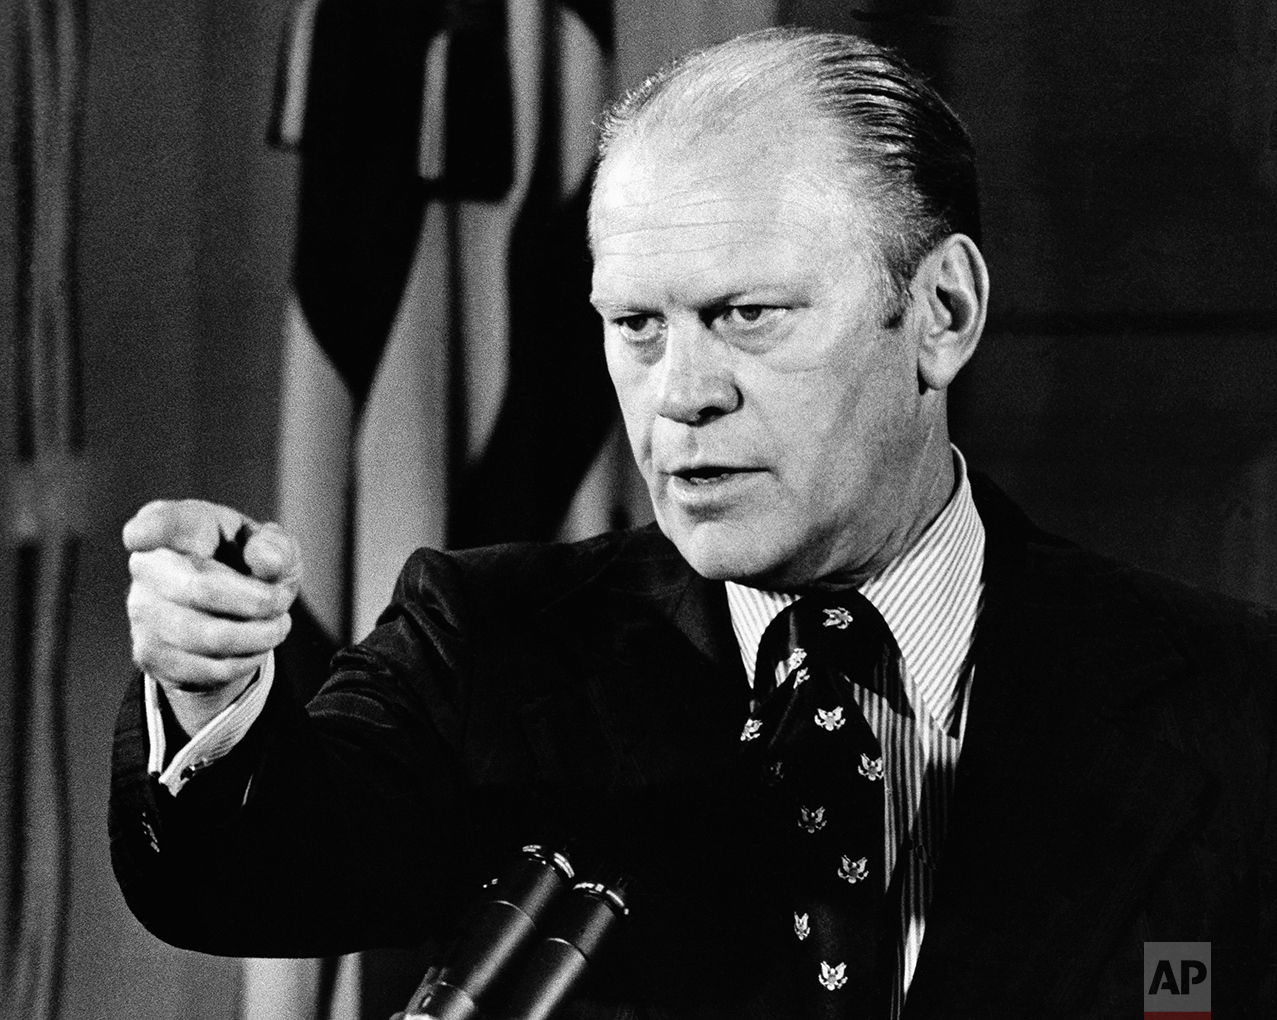 President Ford conducts his first news conference as president Aug. 29, 1974 in the White House's East Room. (AP Photo)